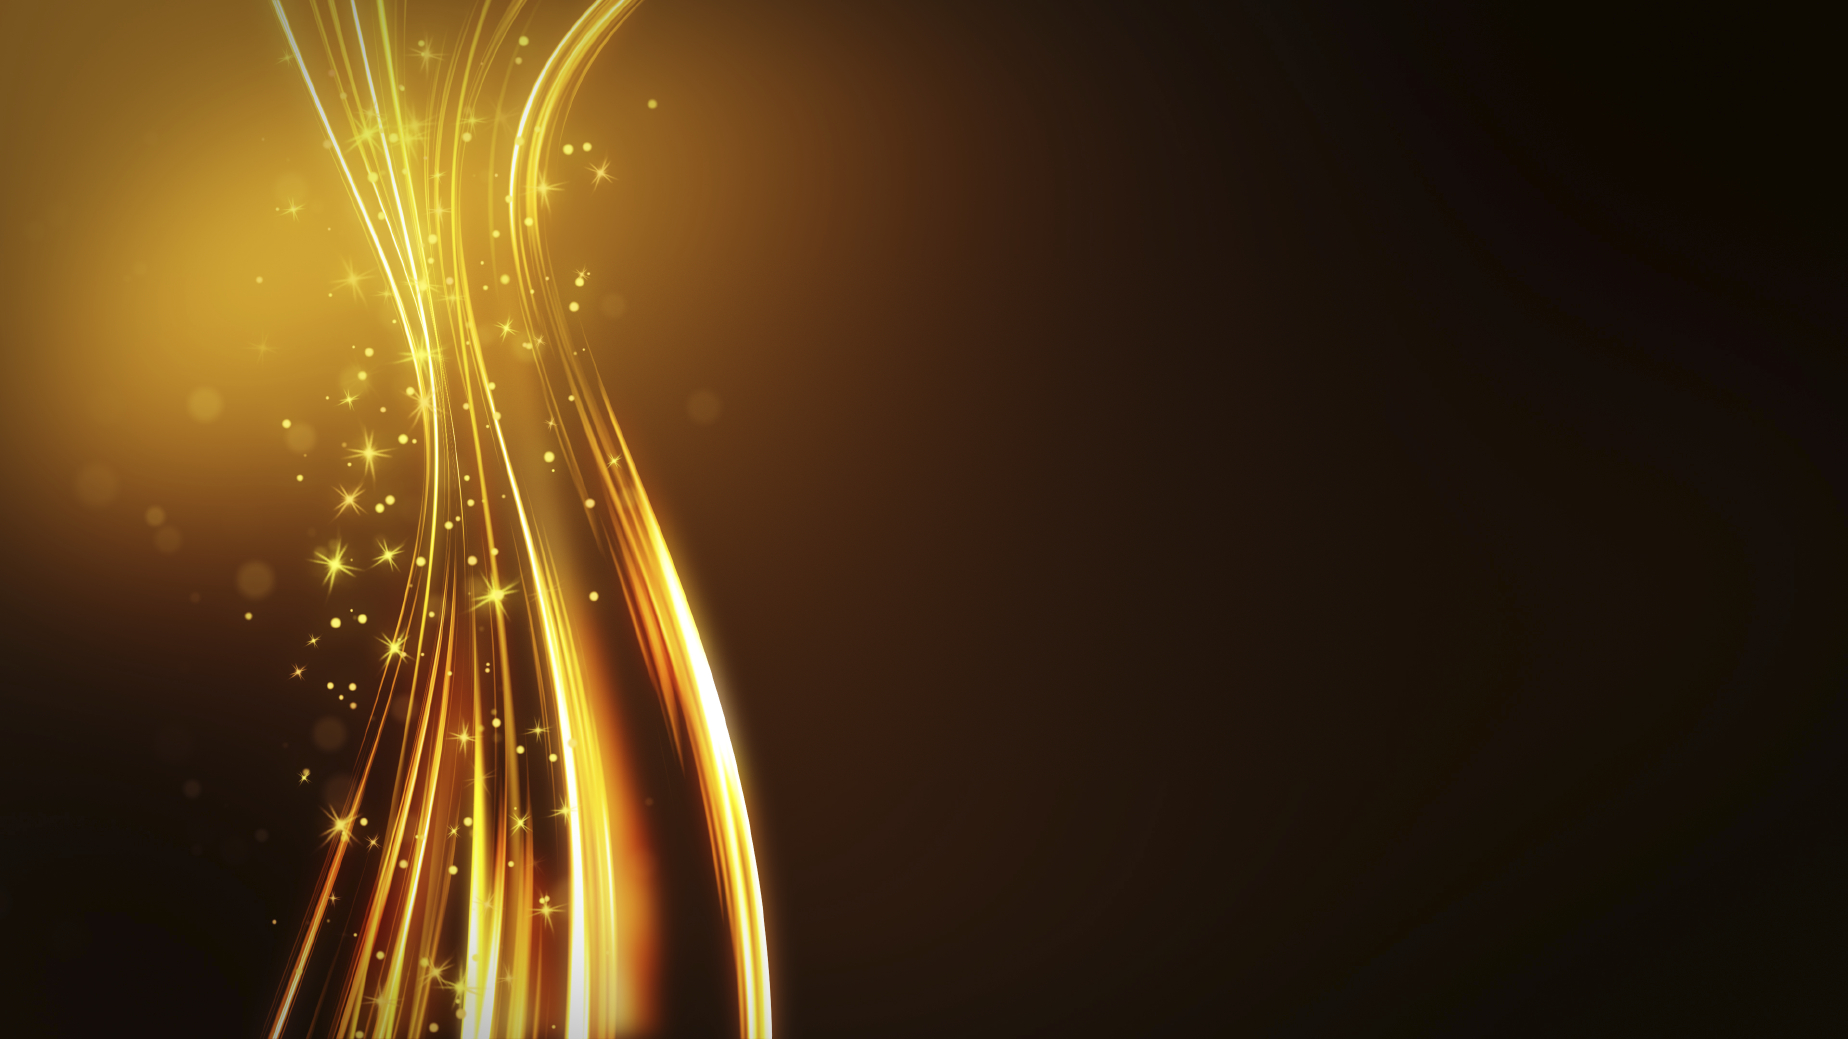 black and gold abstract wallpaper wallpapersafari